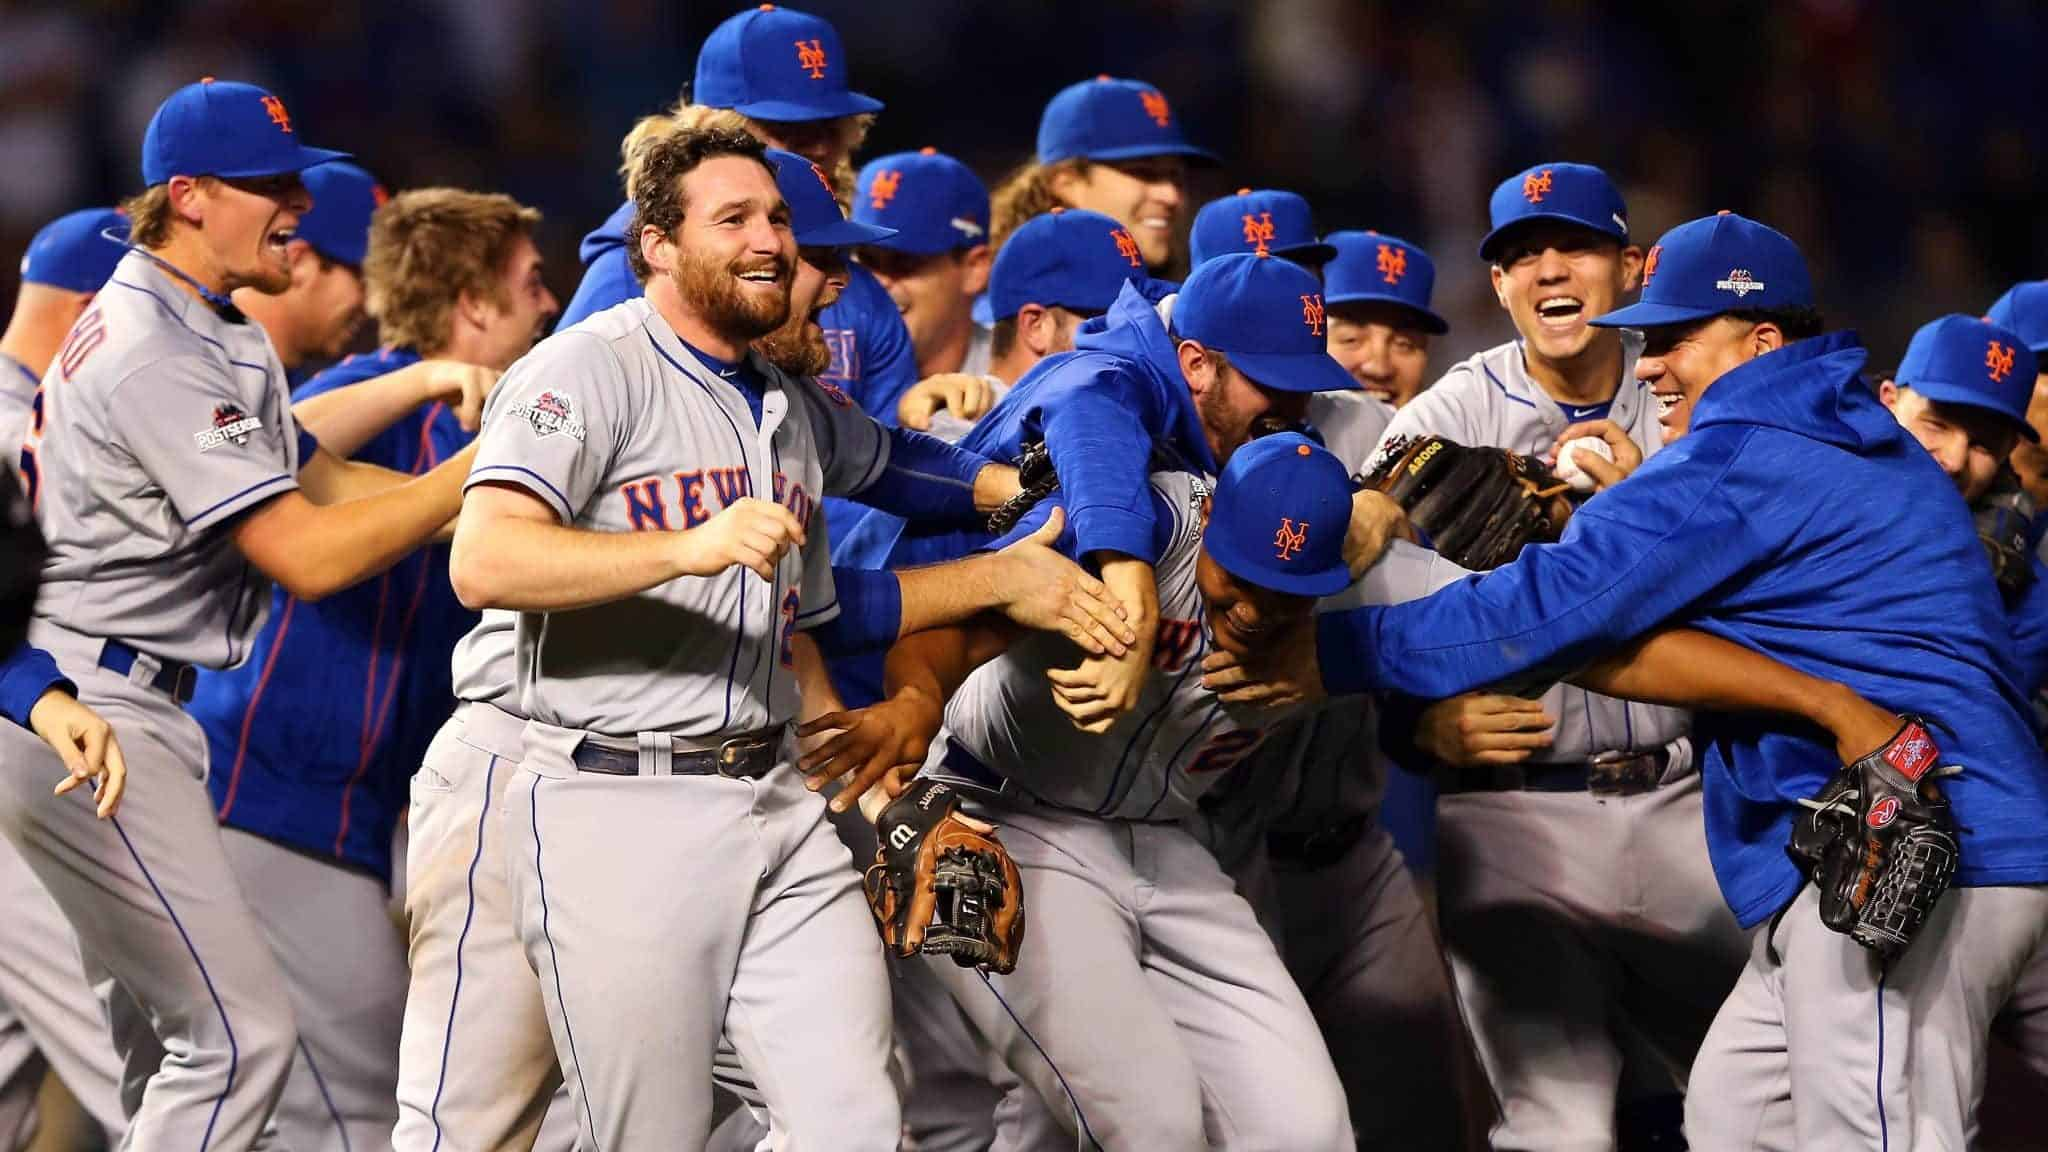 CHICAGO, IL - OCTOBER 21: Daniel Murphy #28 of the New York Mets celebrates with his teammates after defeating the Chicago Cubs in game four of the 2015 MLB National League Championship Series at Wrigley Field on October 21, 2015 in Chicago, Illinois. The Mets defeated the Cubs with a score of 8 to 3 to sweep Championship Series.